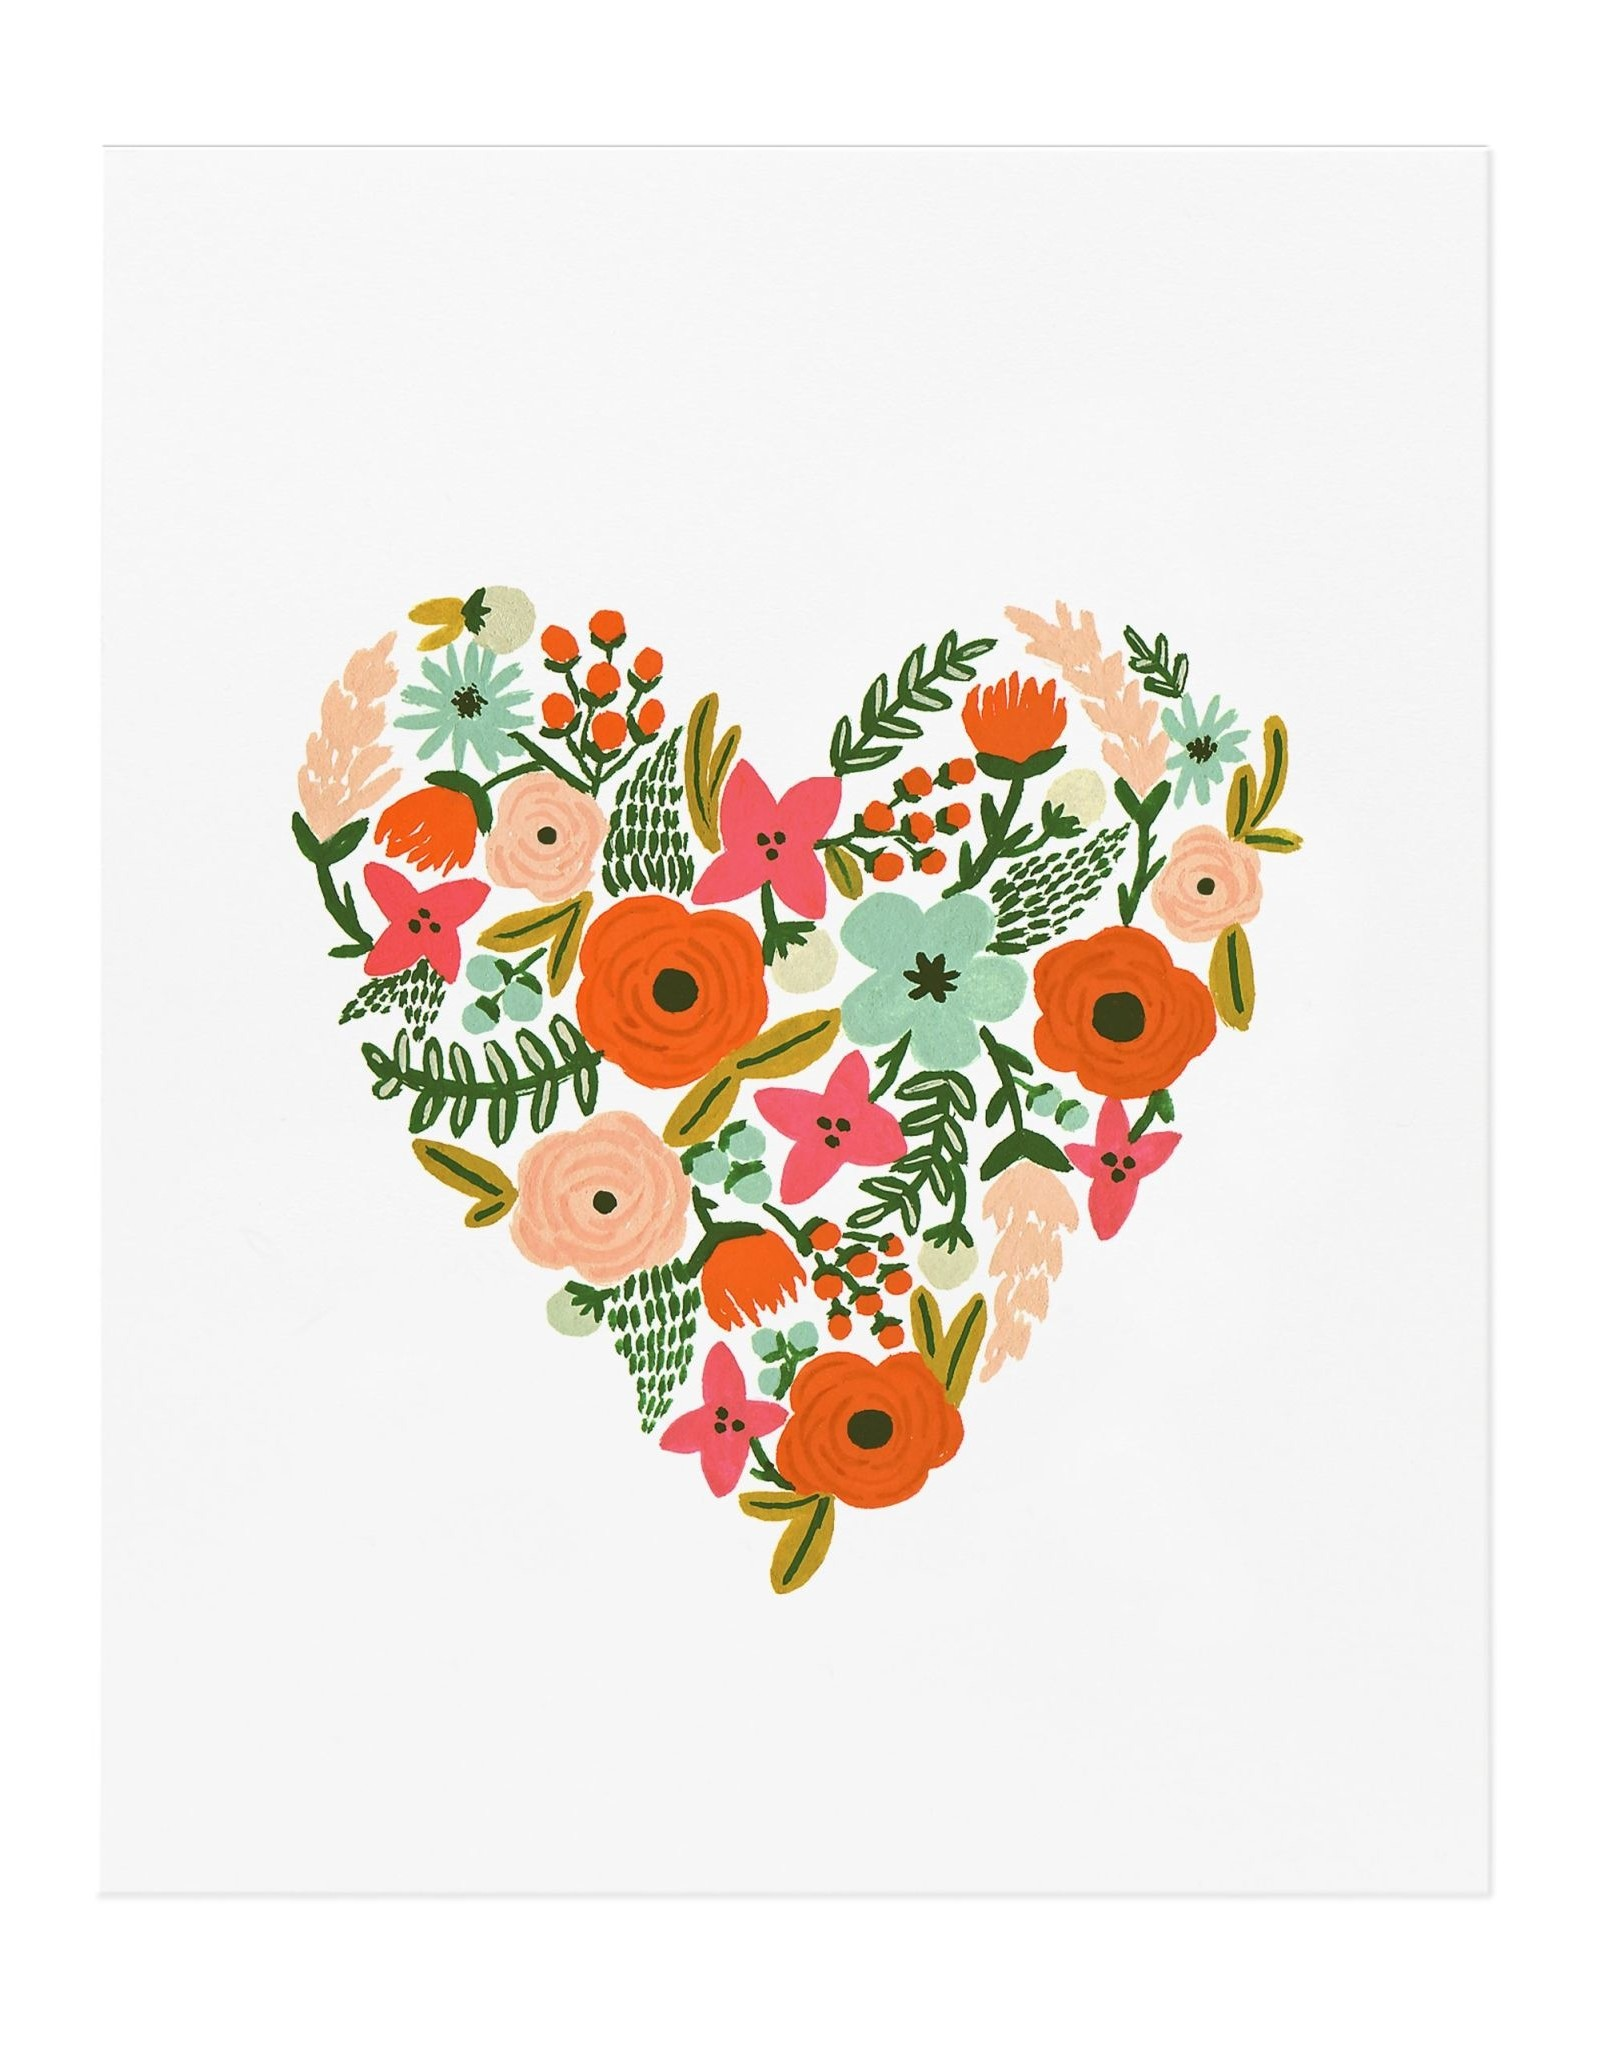 Rifle paper co. Affiche 8x10 - Floral heart